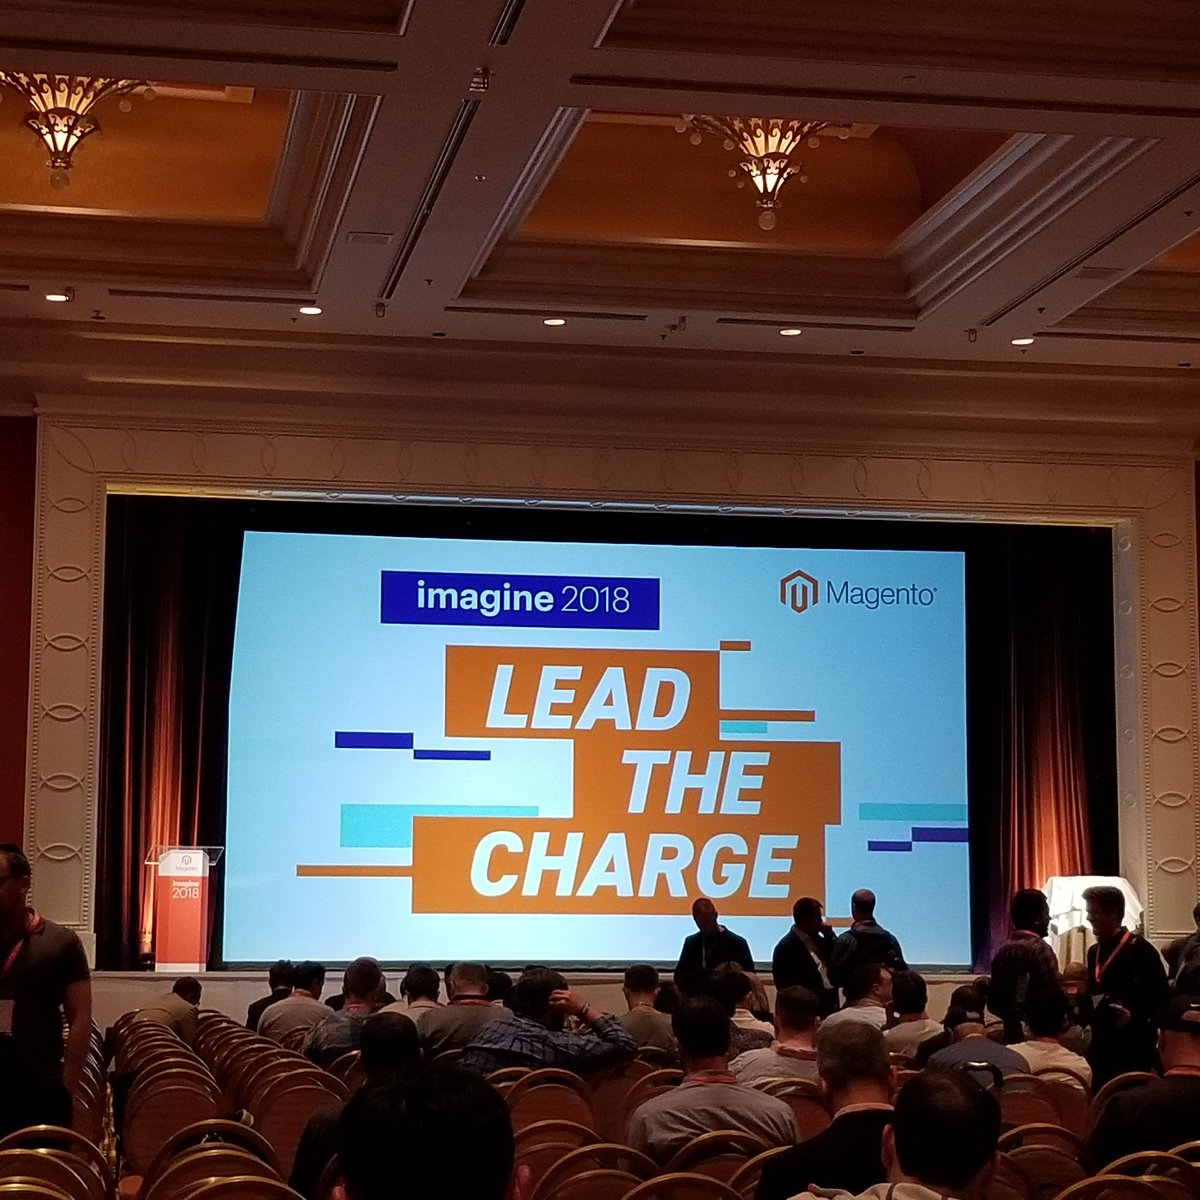 livetss: We have arrived! #roadtoimaginedestinationtss #leadthecharge #MagentoImagine https://t.co/WJvWB1zqPu